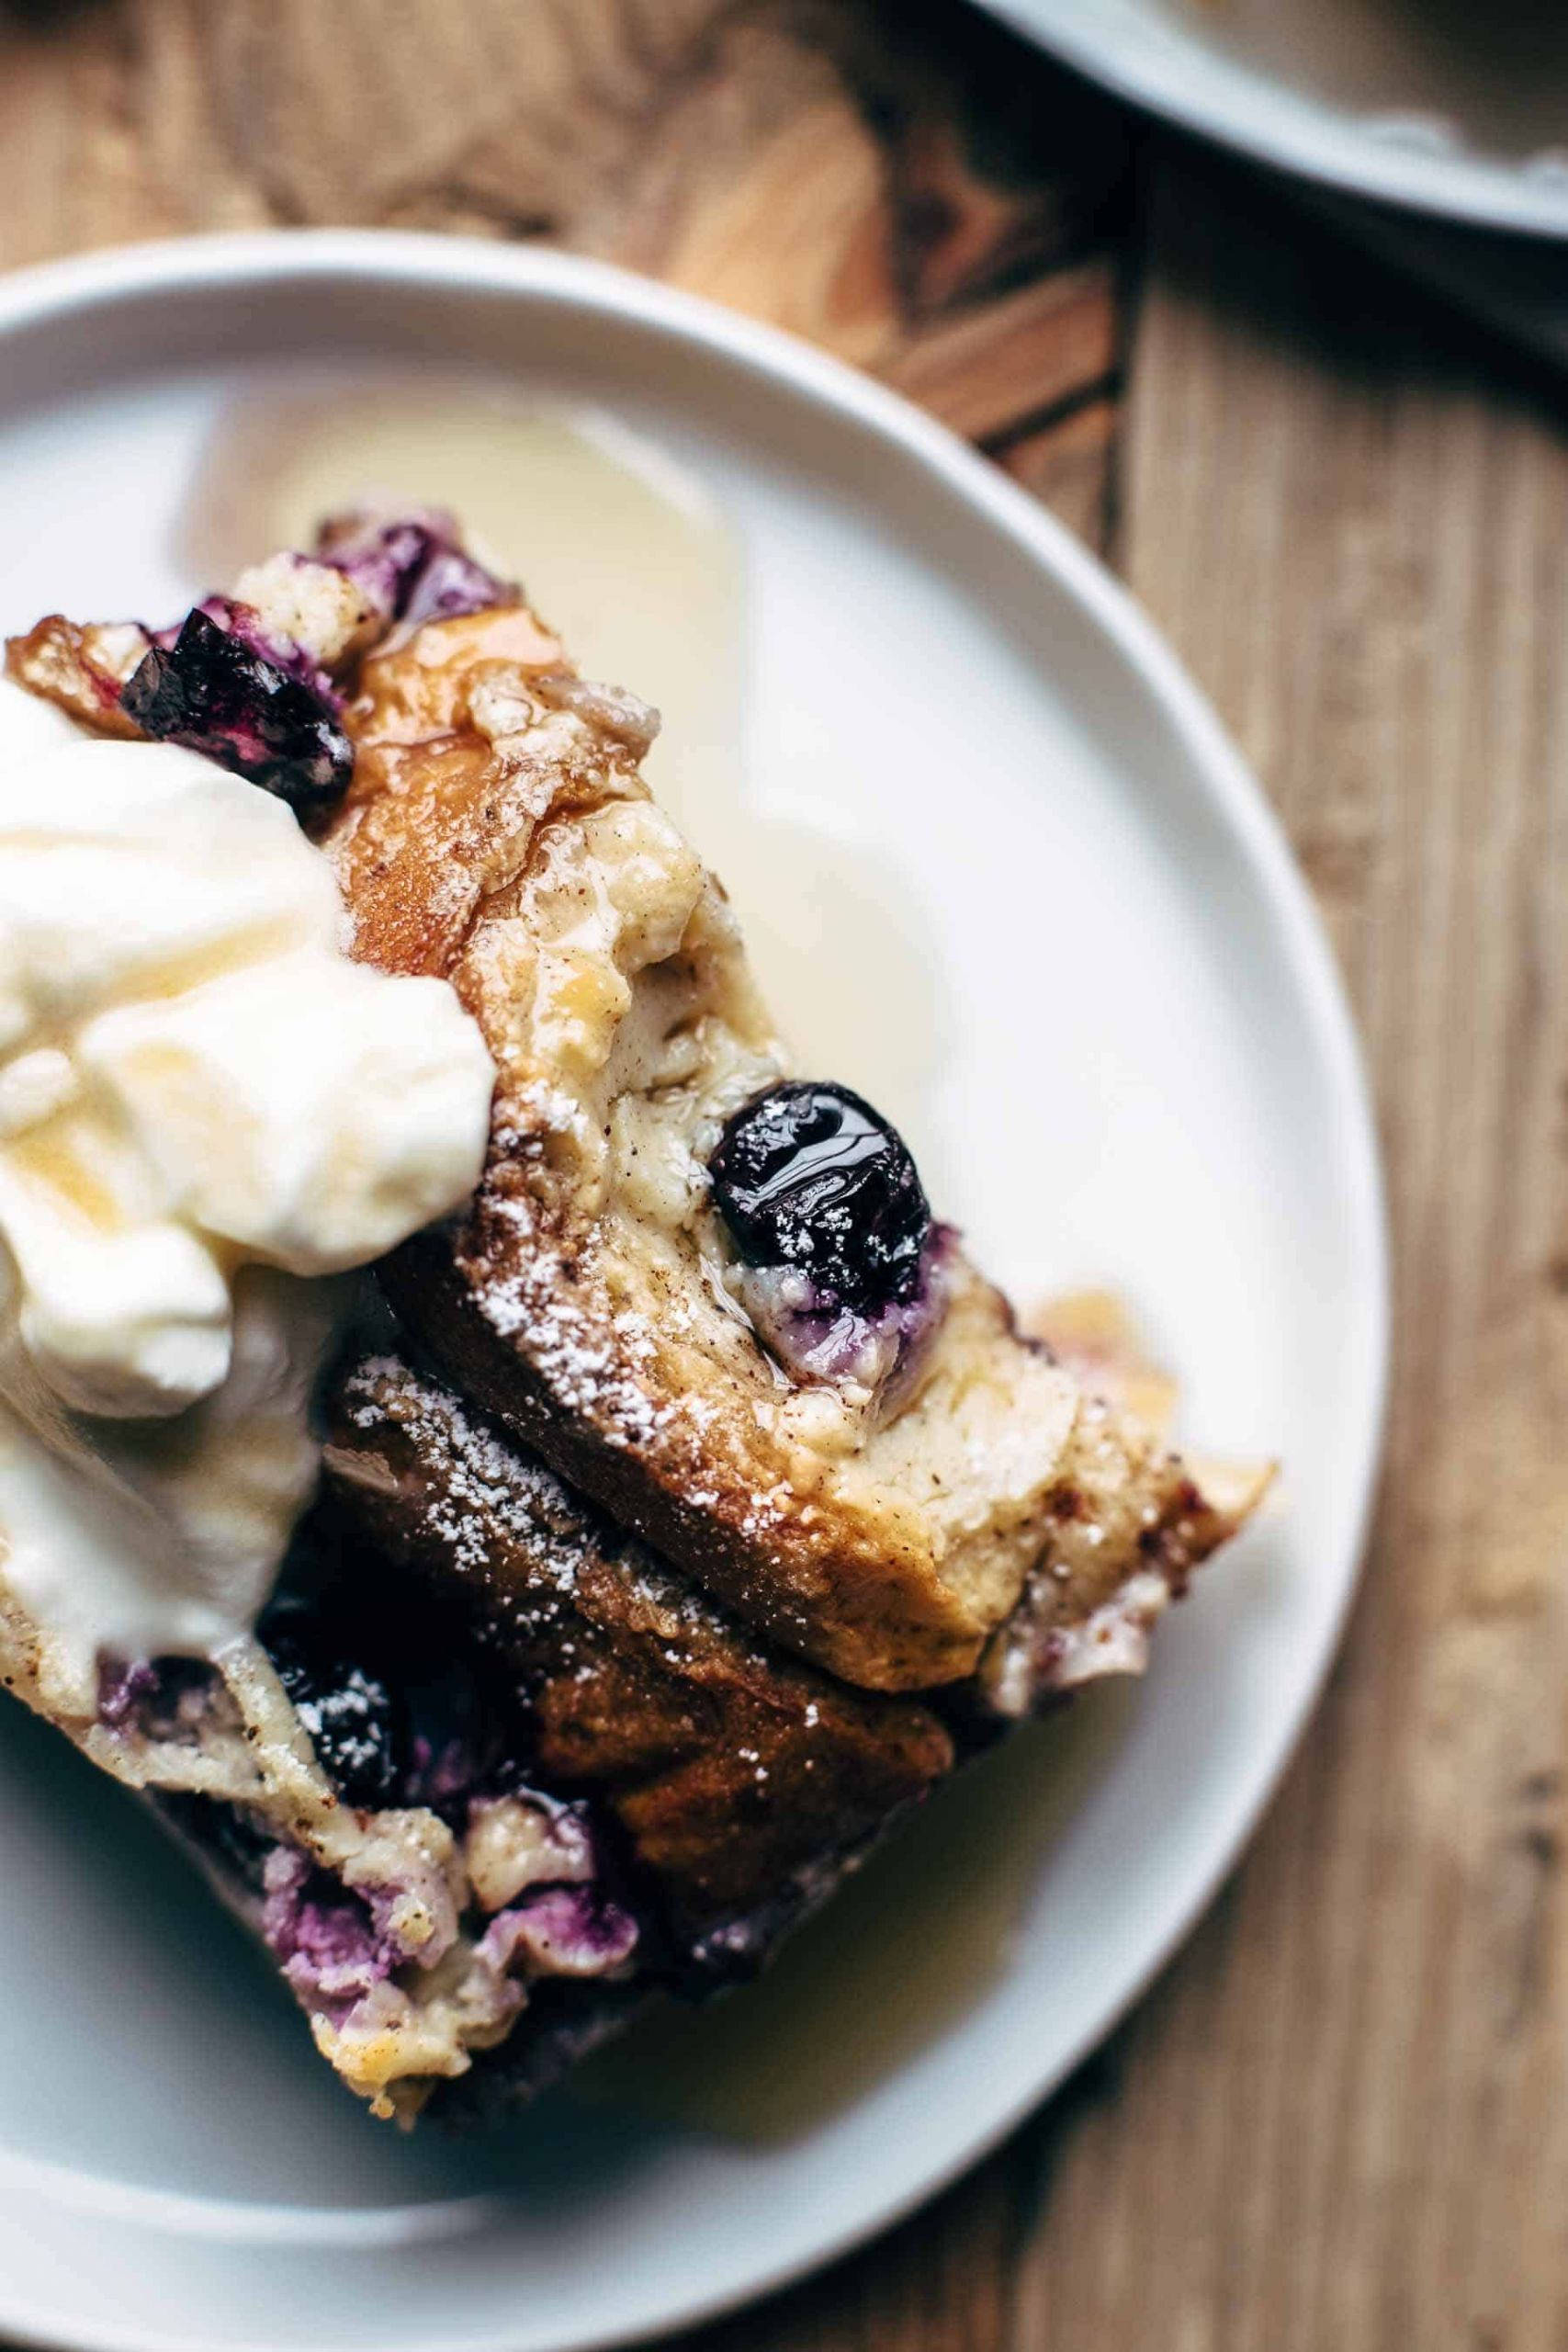 Blueberry Cream Cheese French Toast  Blueberry Cream Cheese French Toast Bake